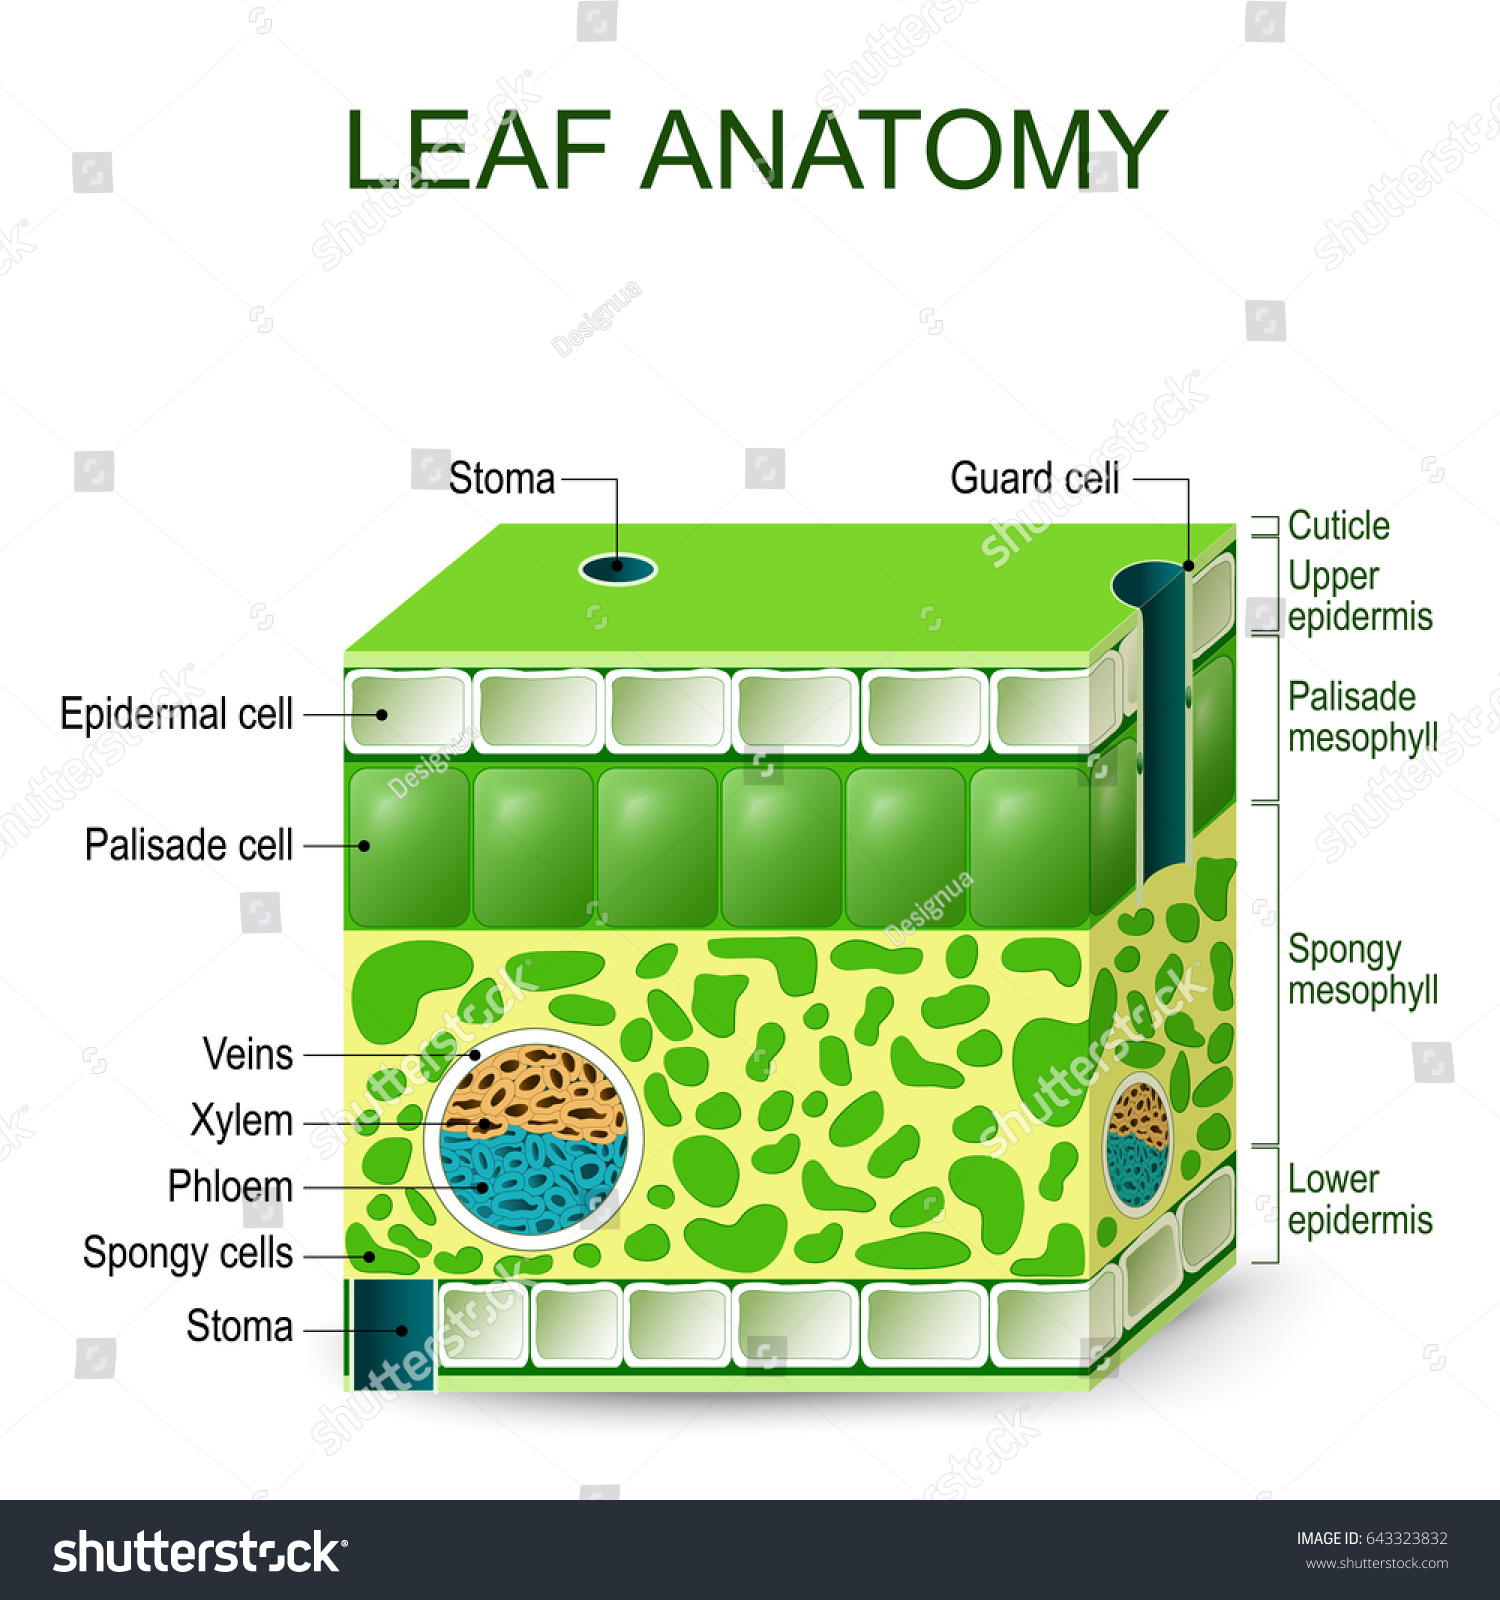 Leaf Anatomy Diagram On White Background Stock